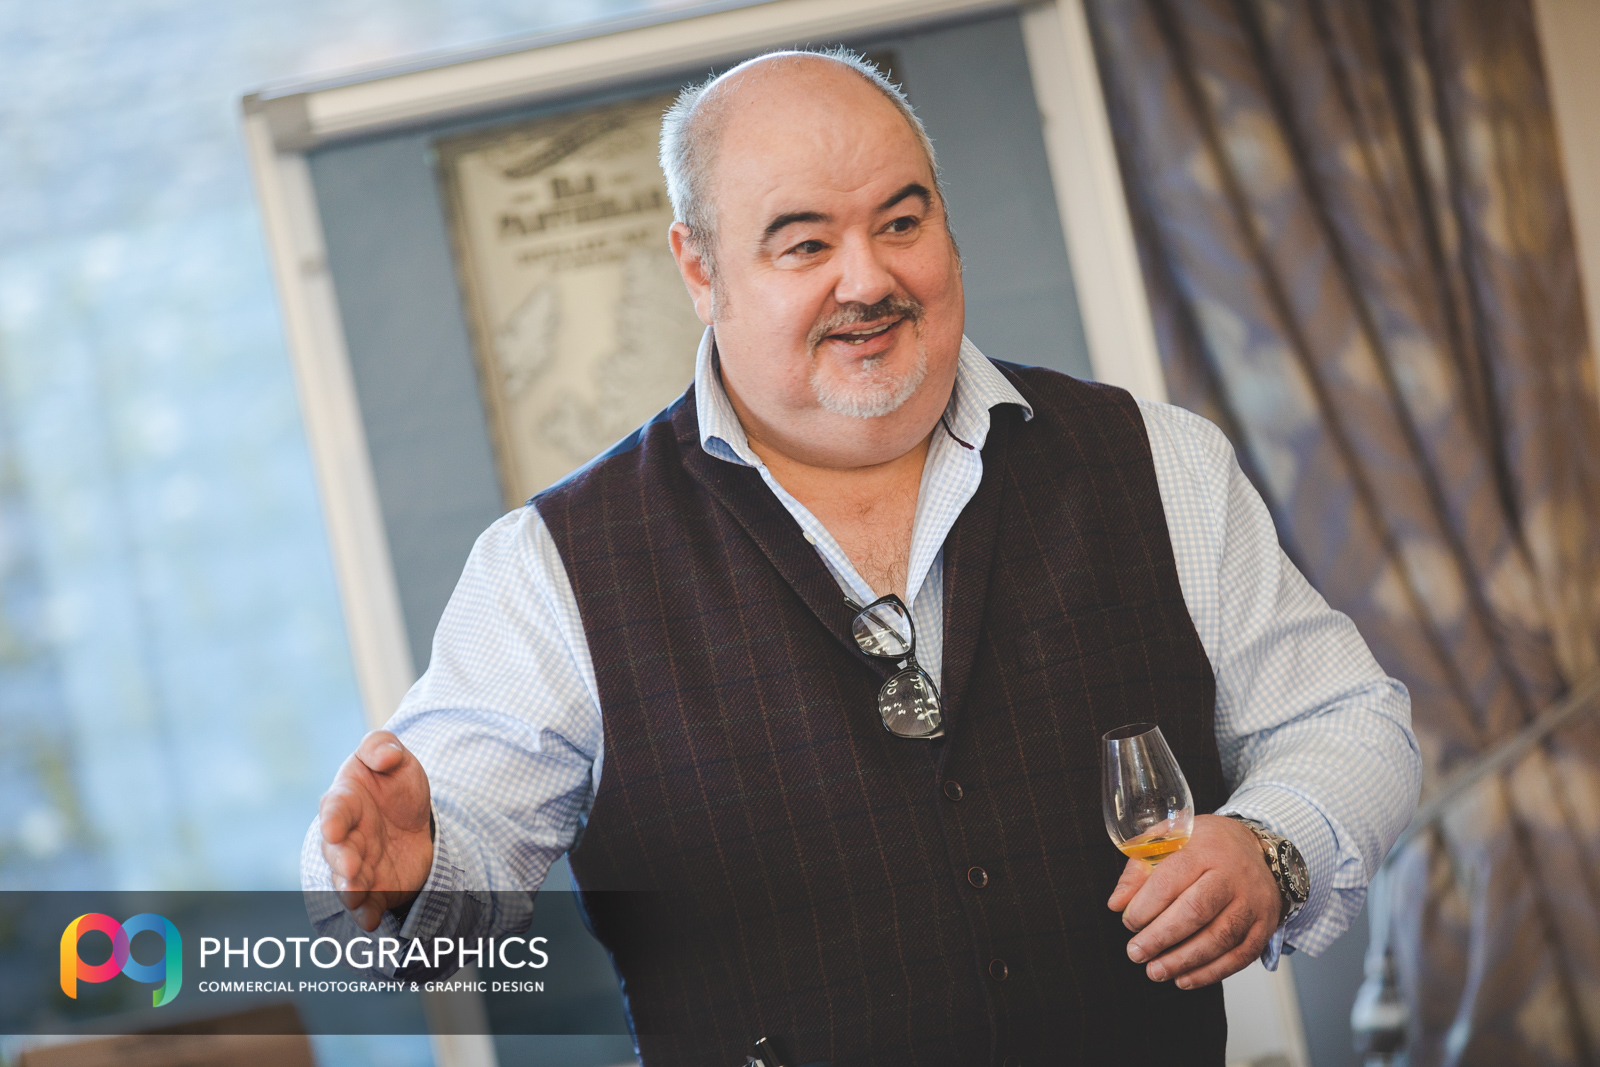 whisky-tasting-event-photography-glasgow-edinburgh-scotland-10.jpg